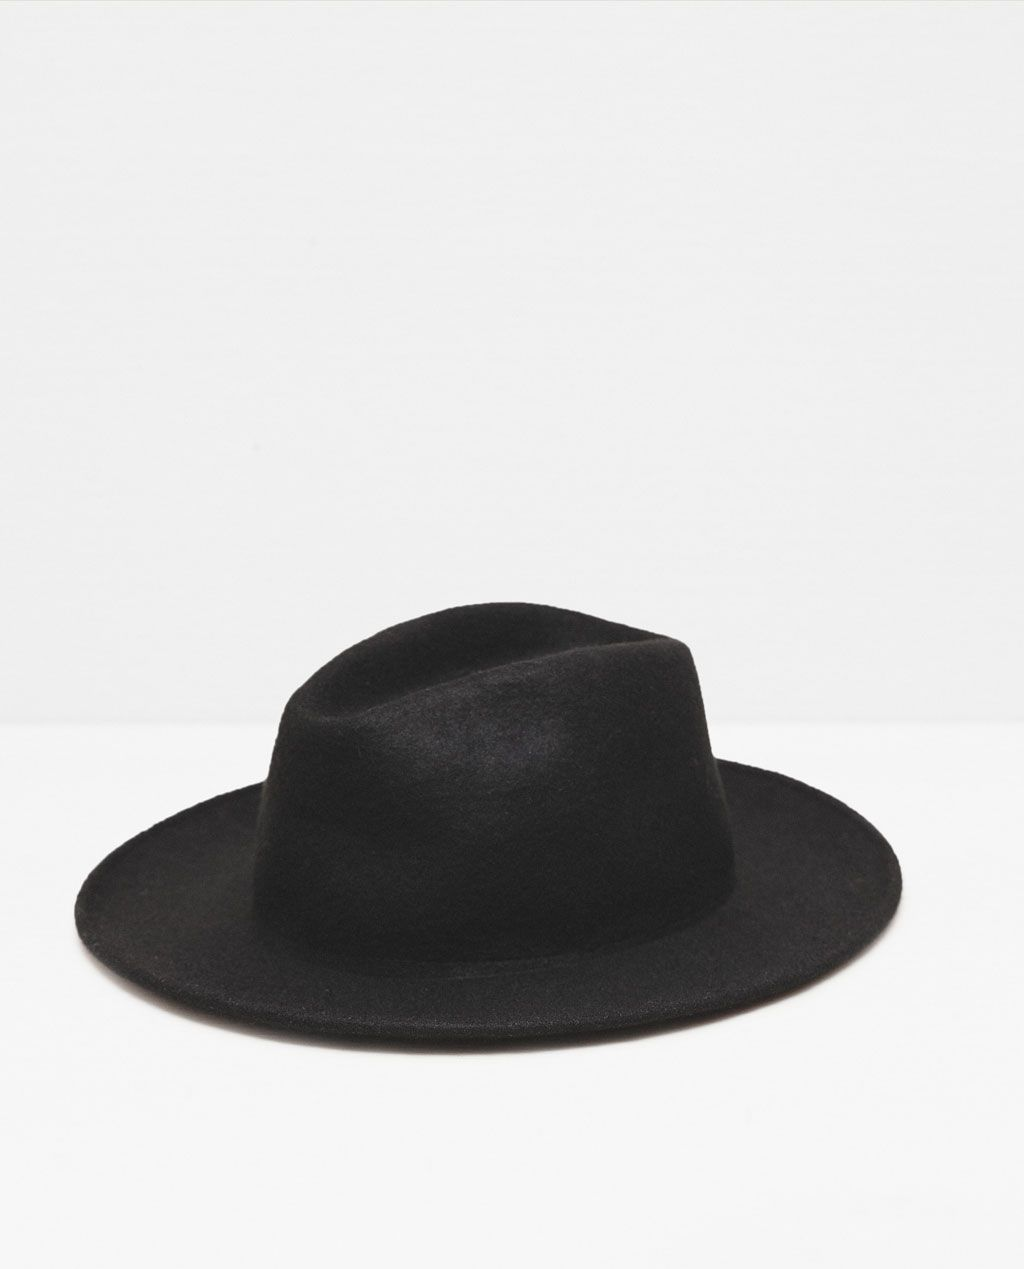 FELT HAT-Hats-ACCESSORIES-MAN  c9e0bb60a4f